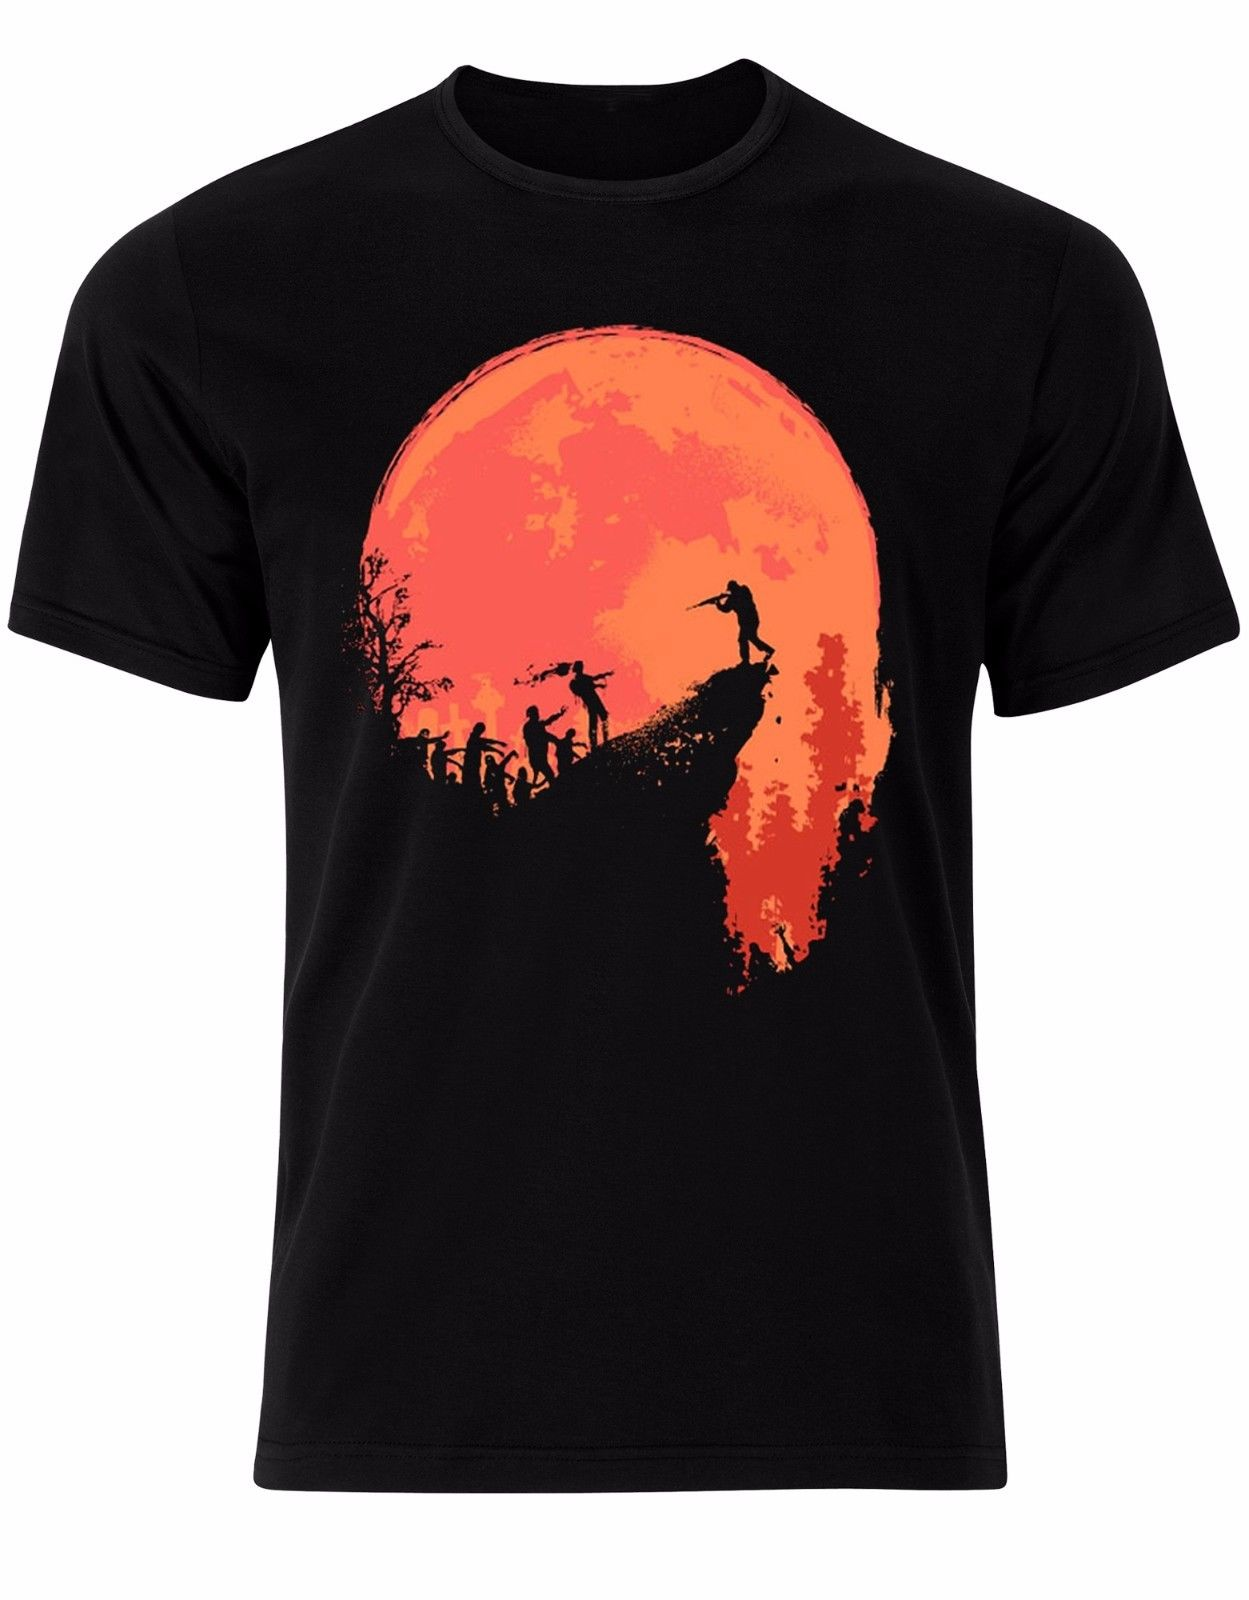 Zombie Killer Orange Moonlight Halloween Post Apocalyptic Men Tshirt Top AL61 Customize Tee Shirts